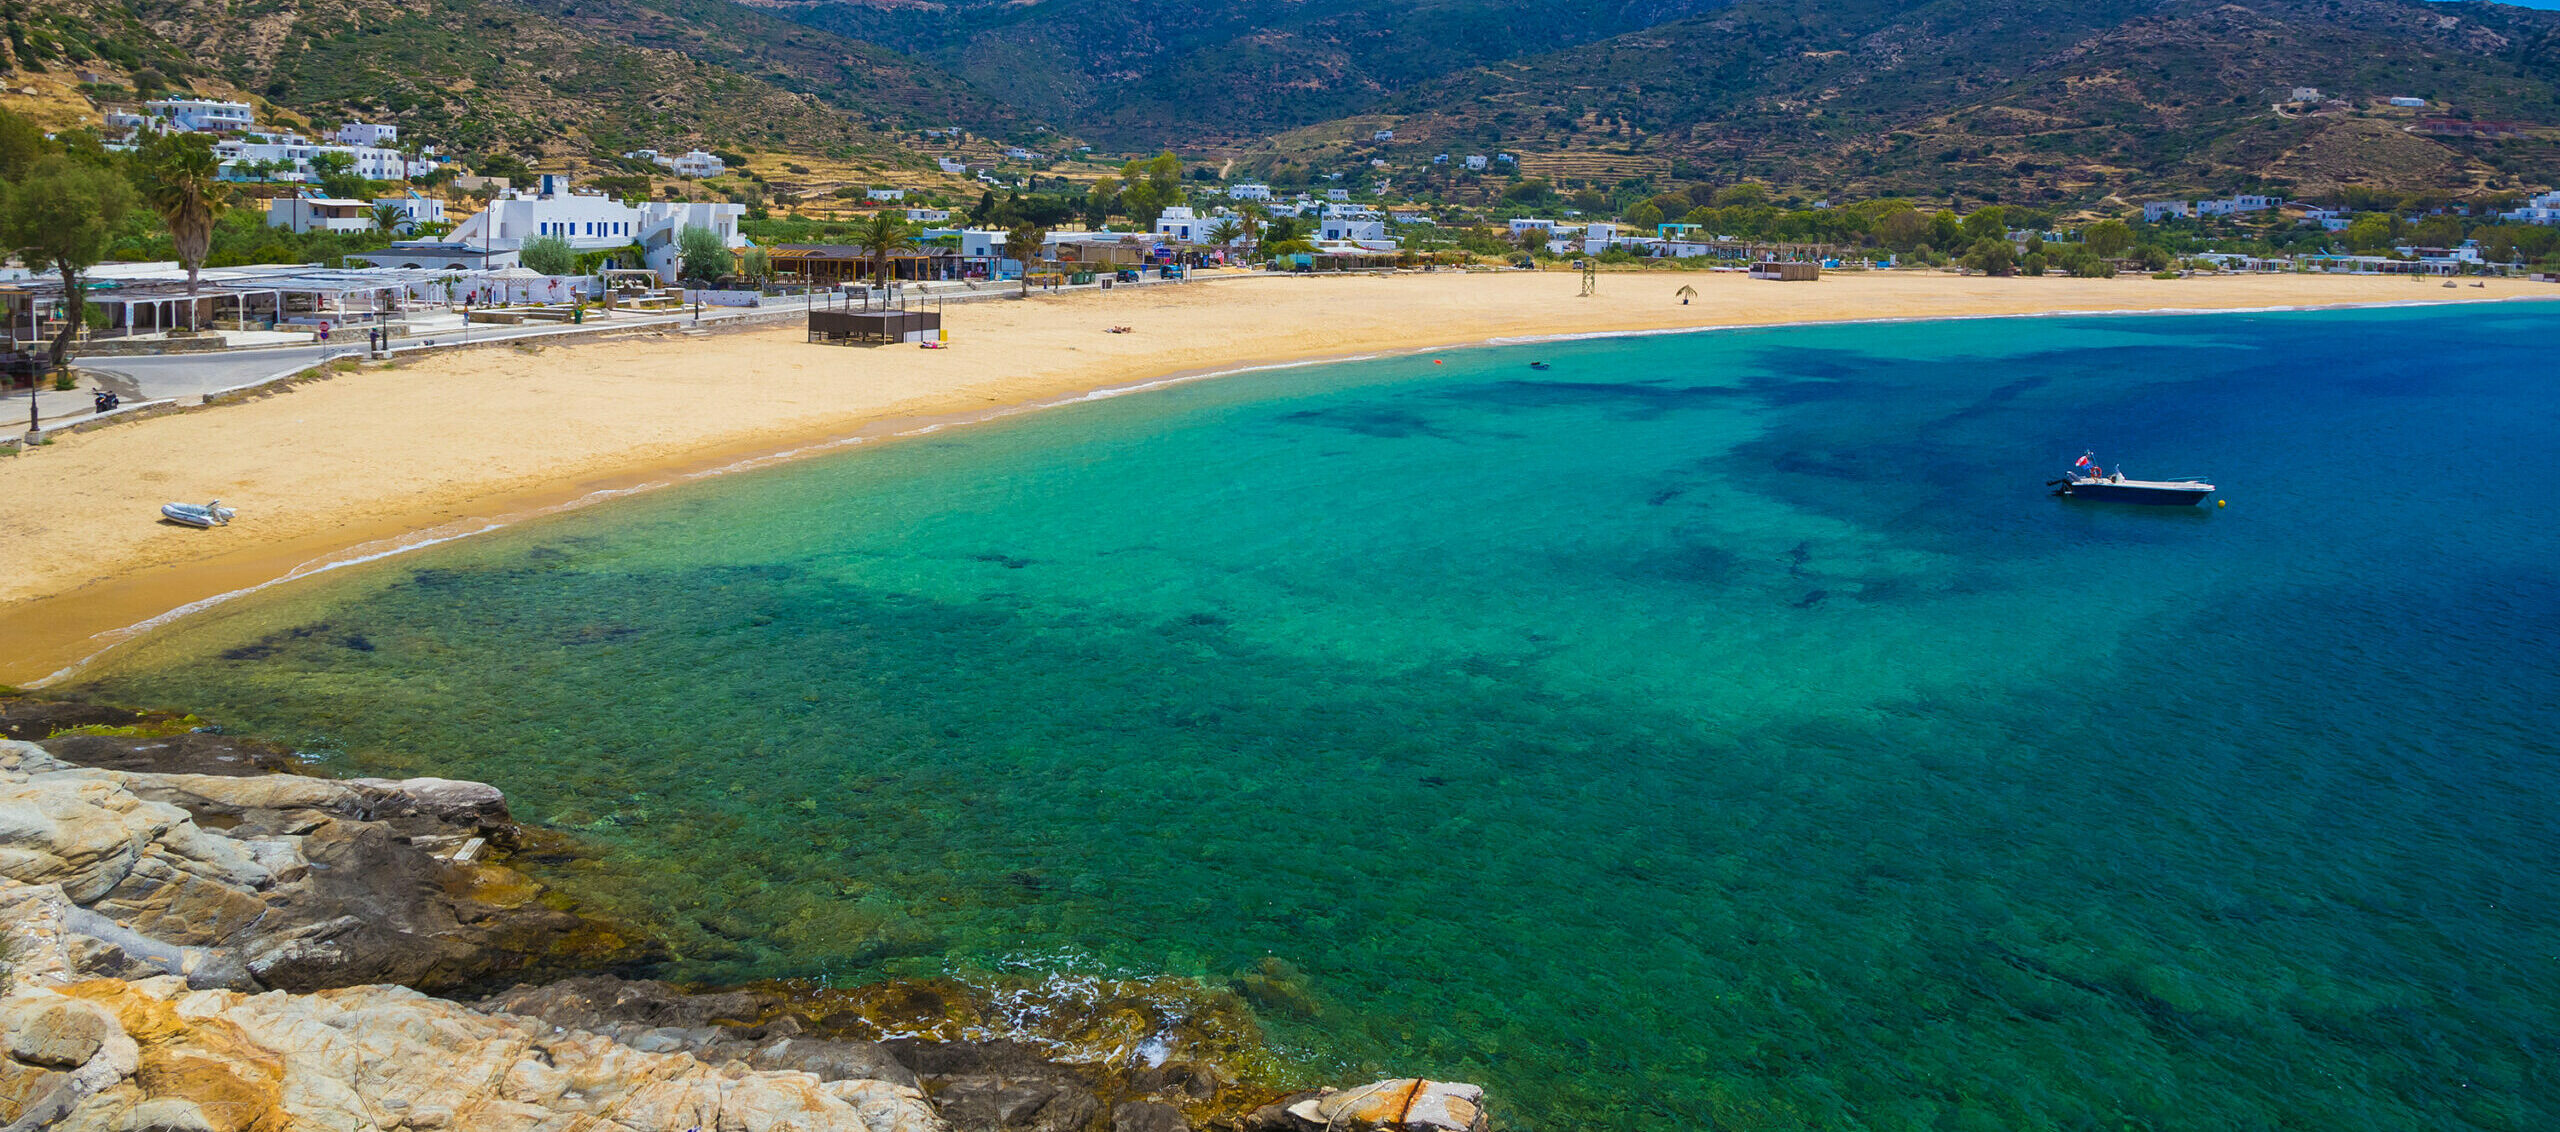 Mylopotas: The petal-shaped beach with all the shades of blue